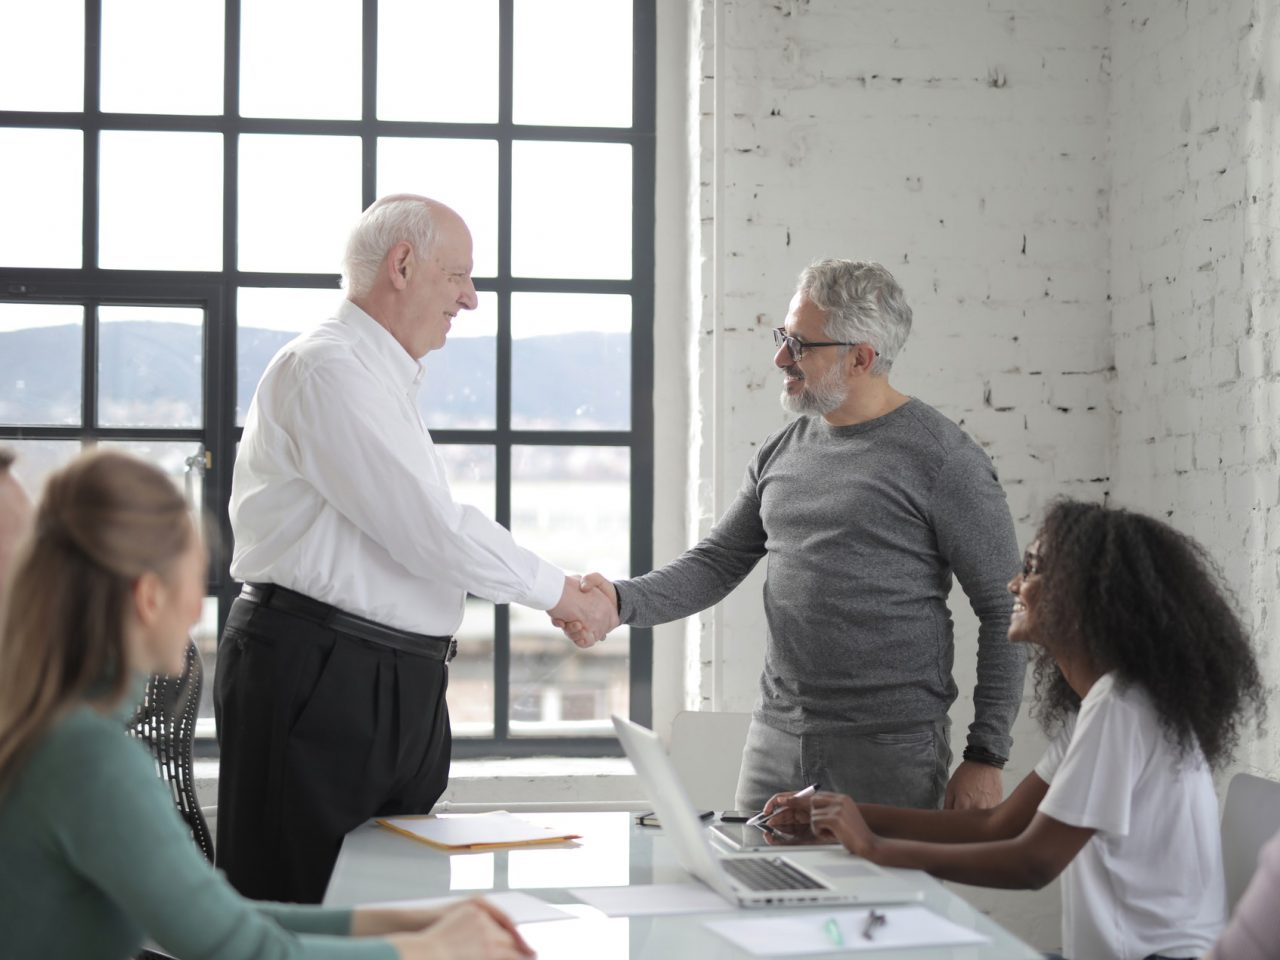 colleagues shaking hands in office